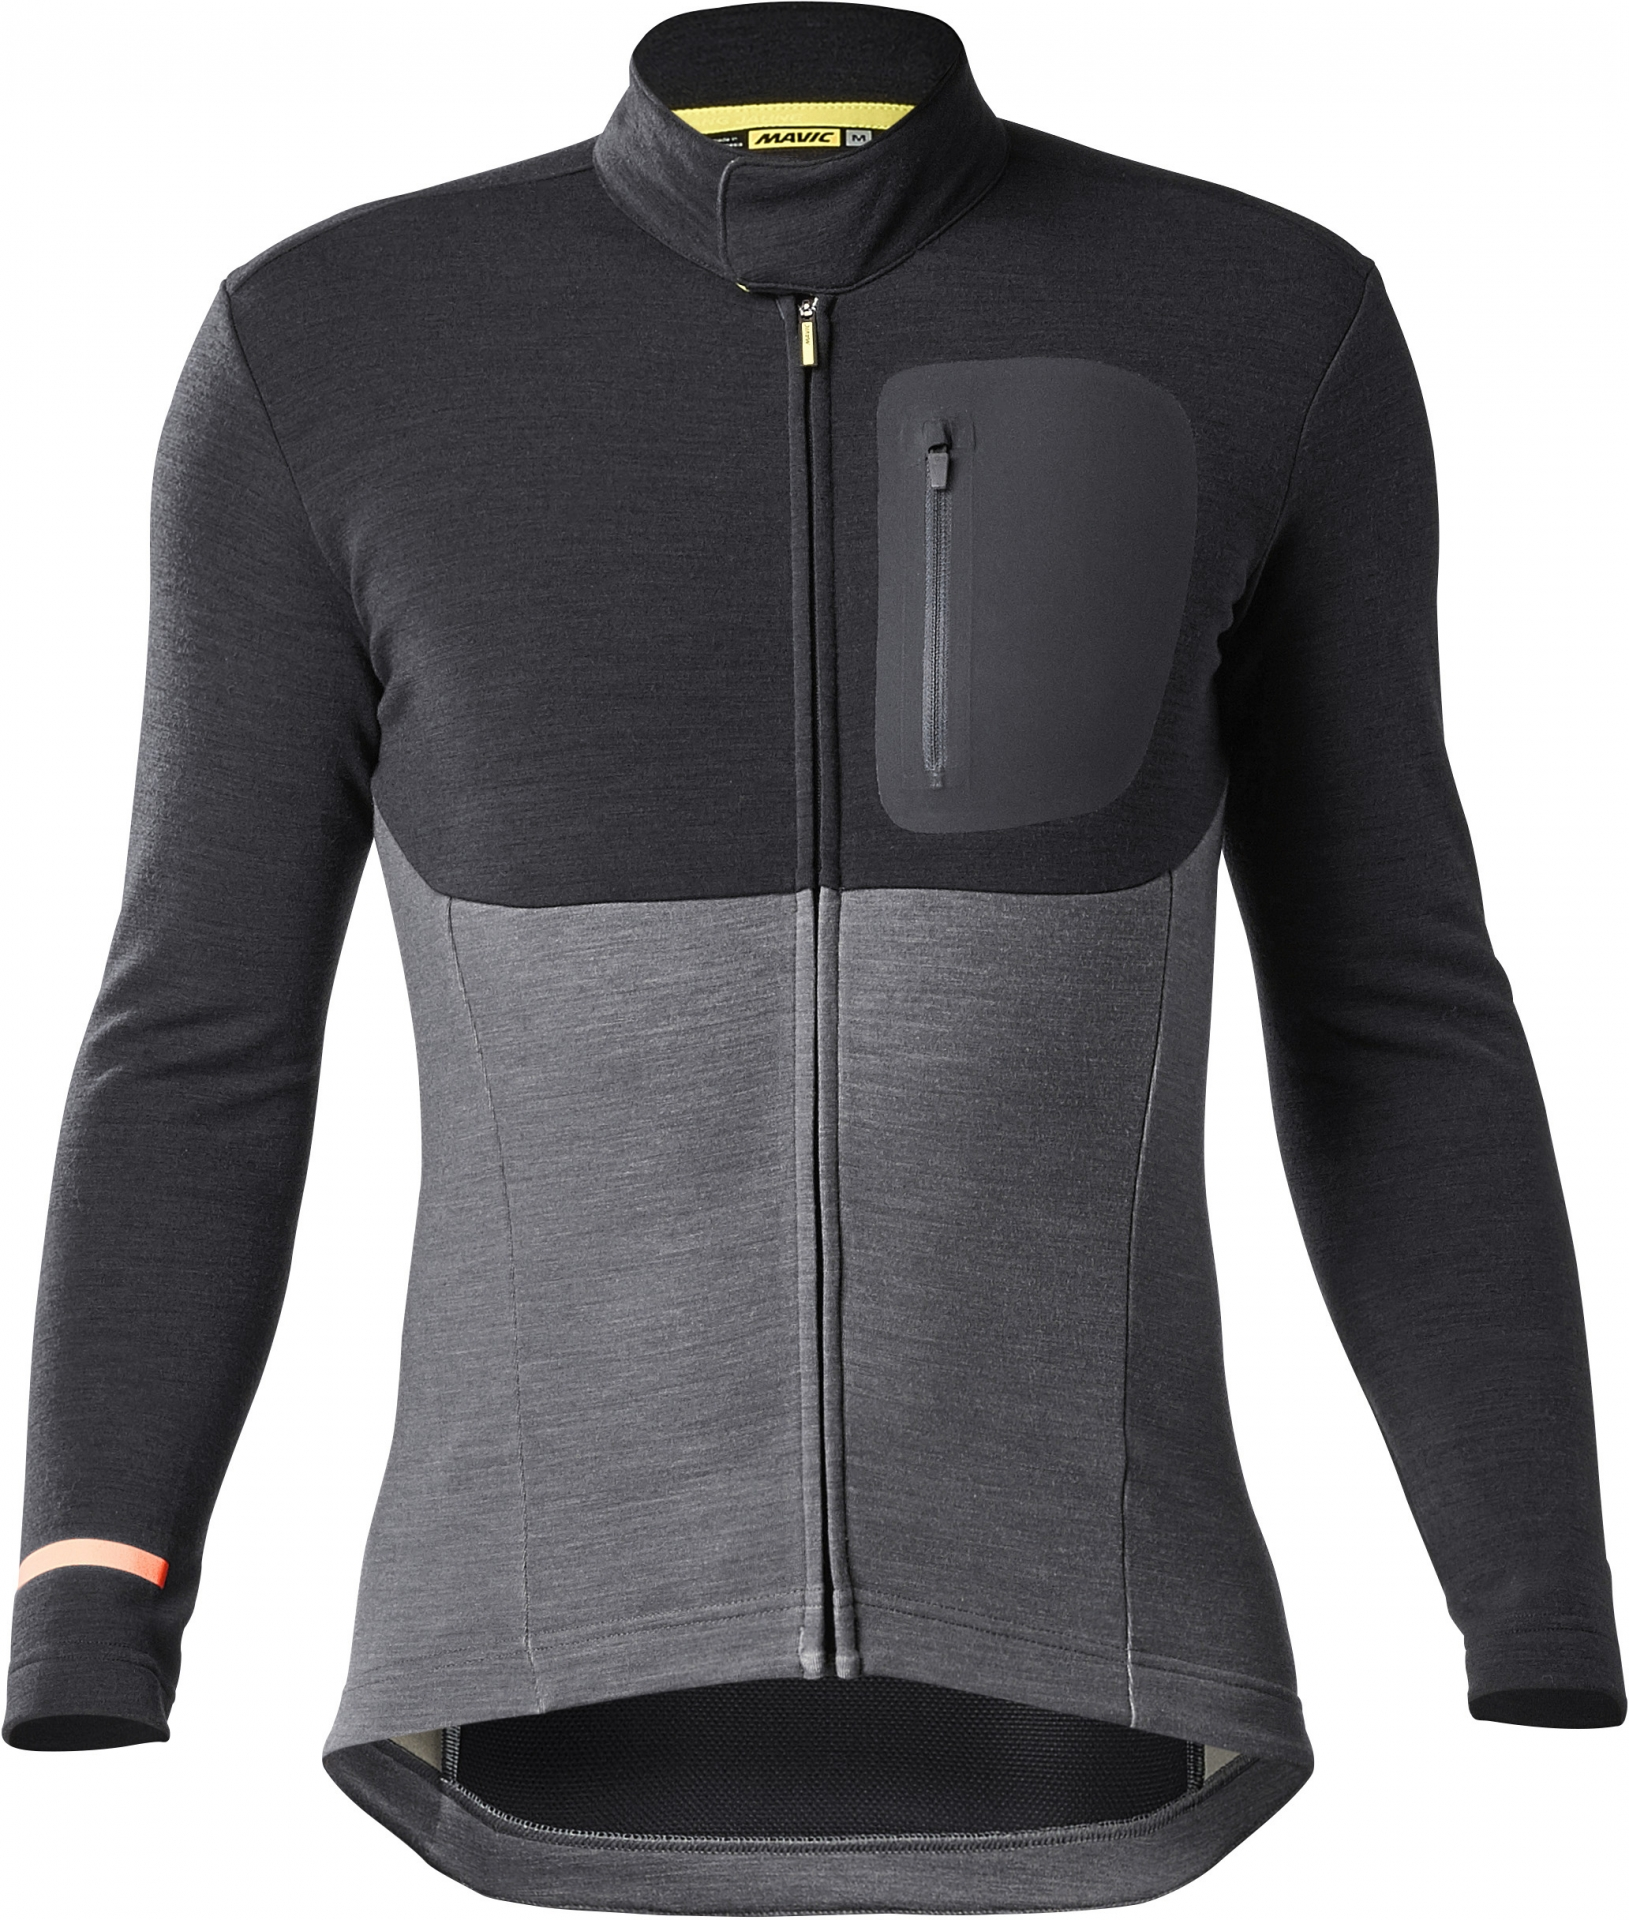 Maillot manches longues Mavic All Road Thermo Noir/Asphalt - XL